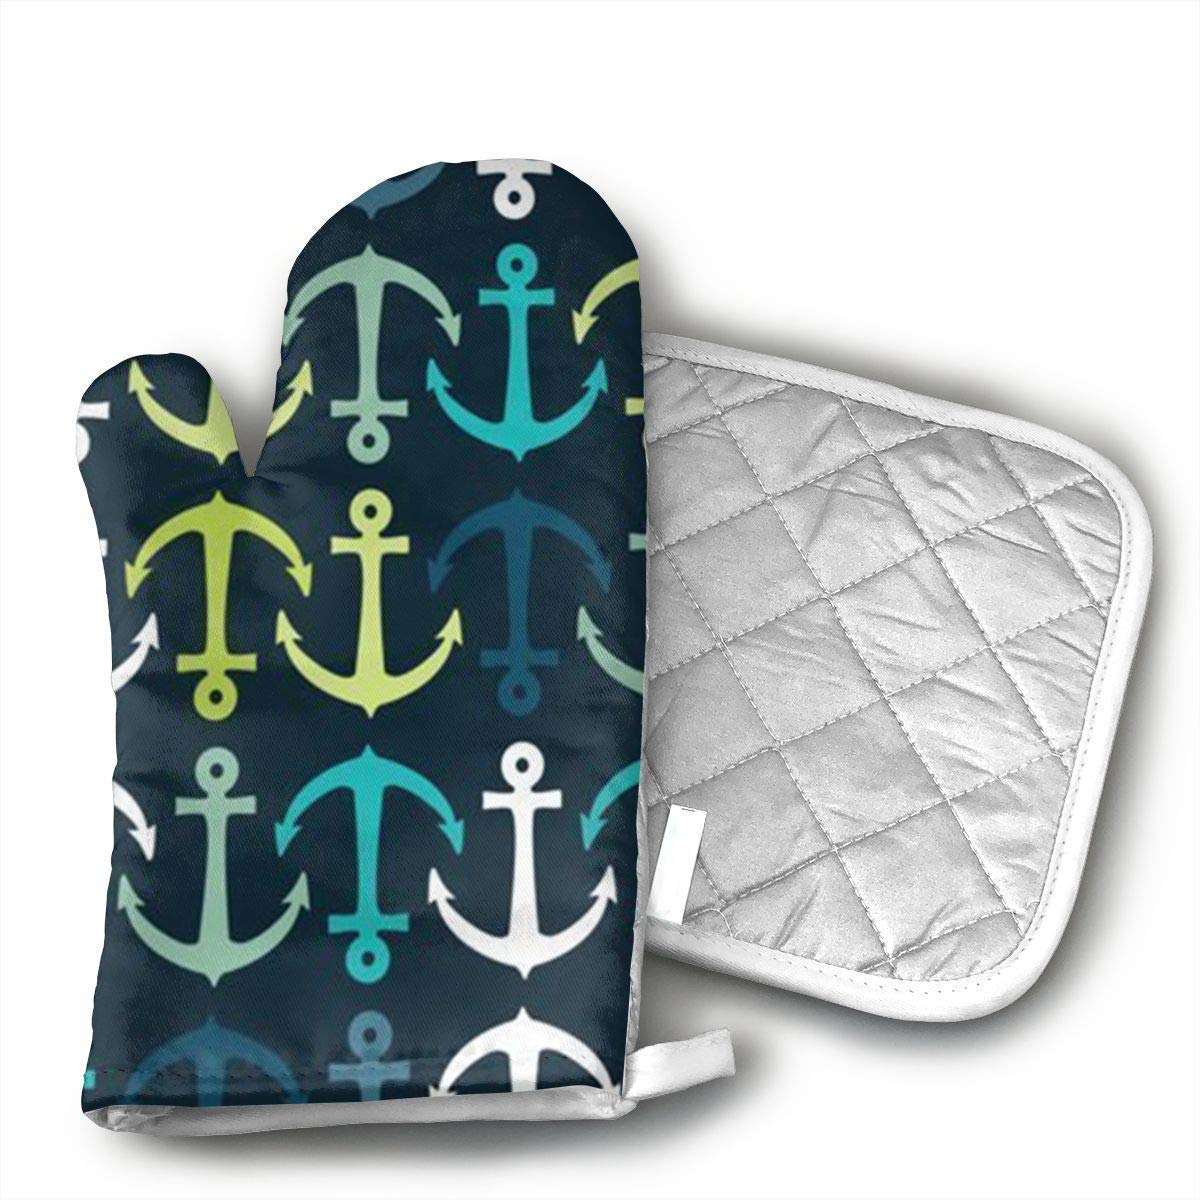 Unique Nautical Navy Anchor Oven Mitts,Professional Heat Resistant Microwave BBQ Oven Insulation Thickening Cotton Gloves Baking Pot Mitts Soft Inner Lining Kitchen Cooking